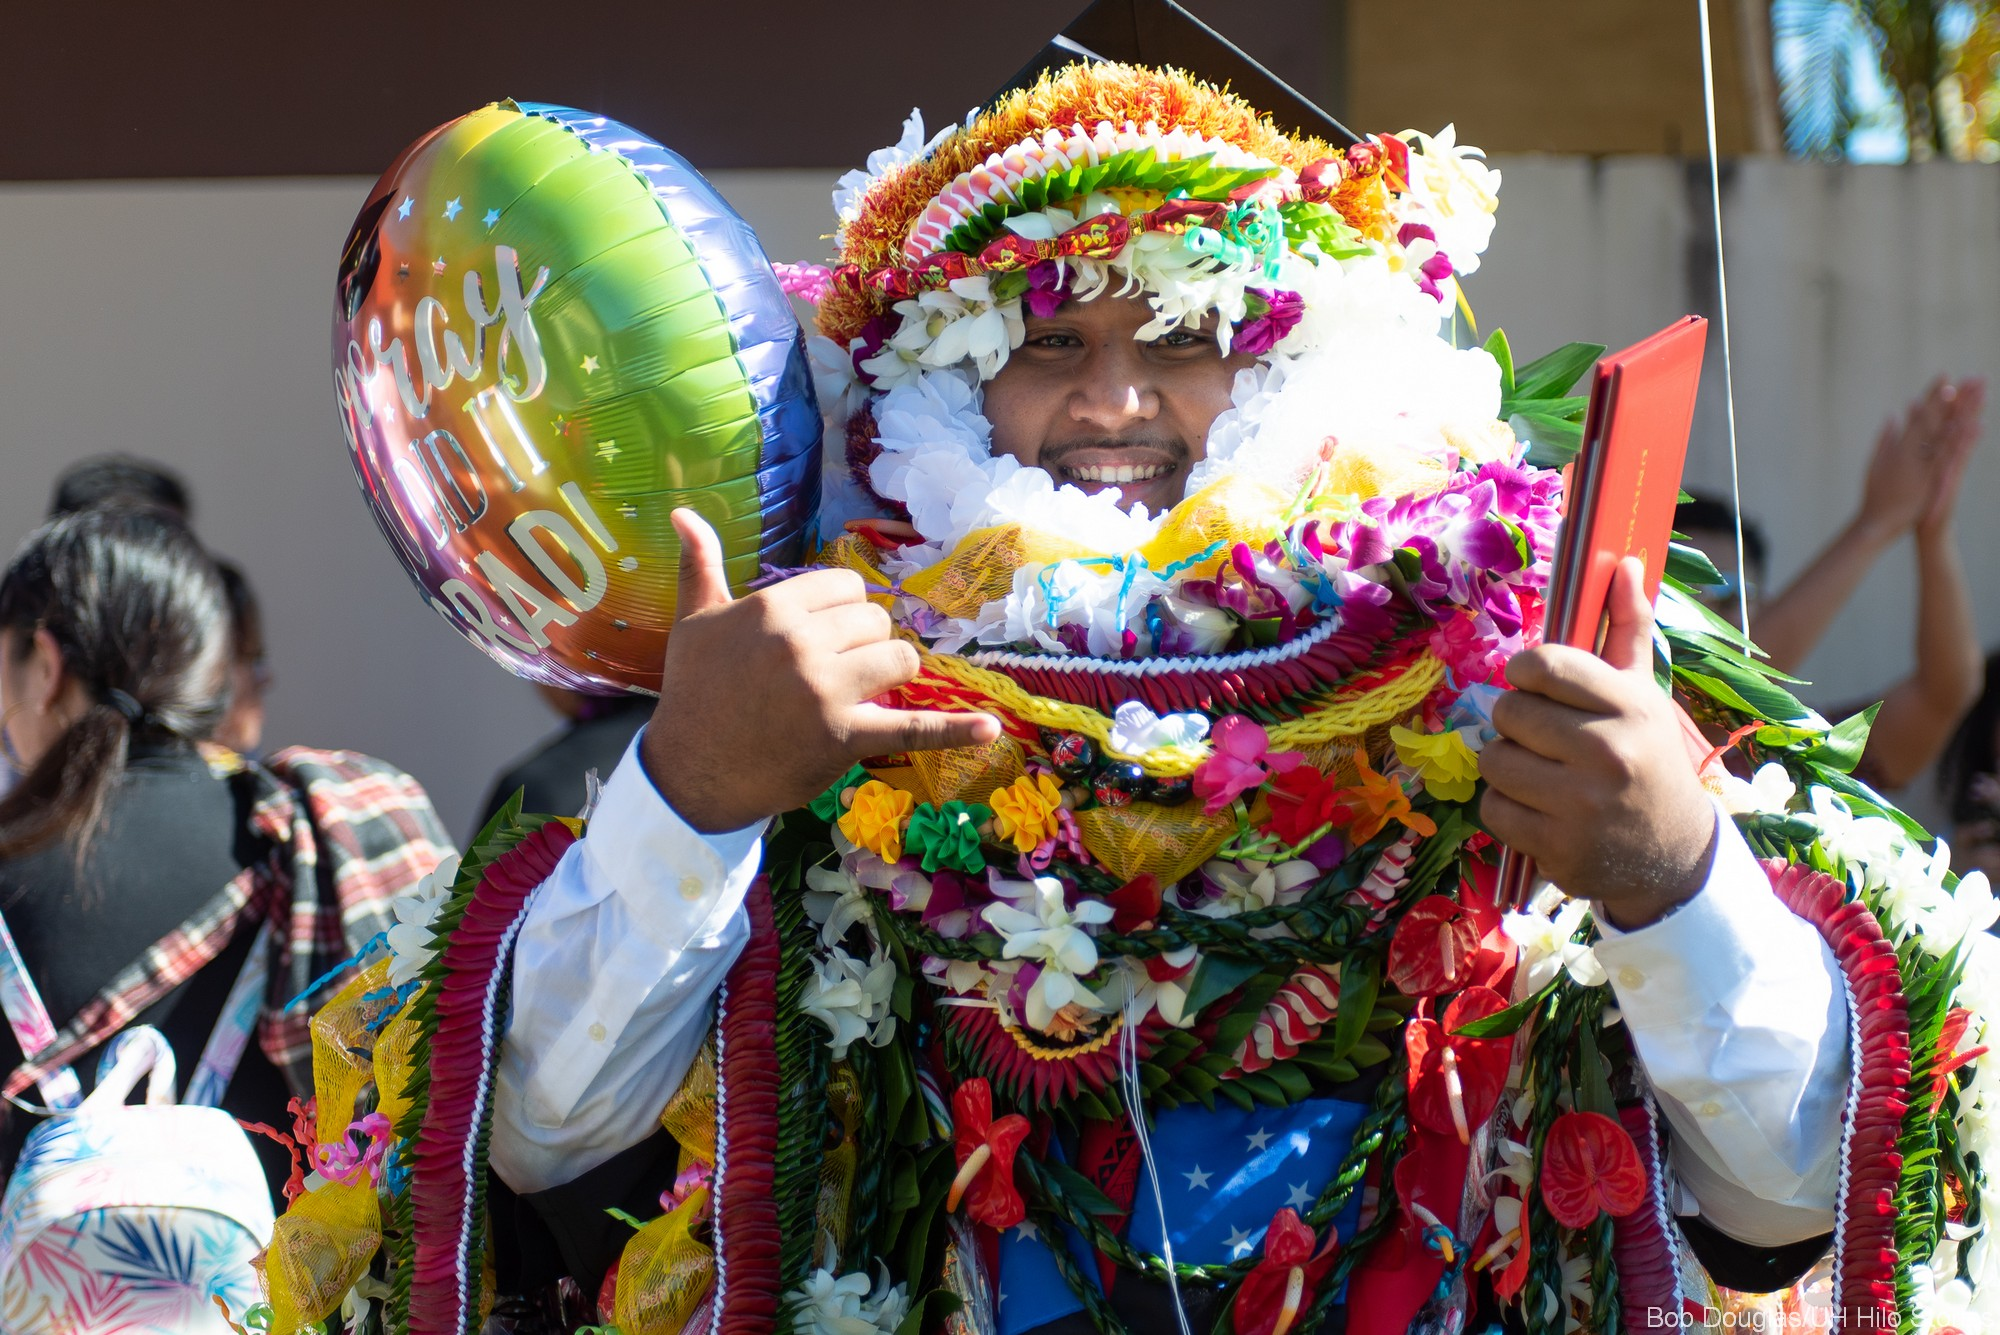 Graduate in lei all the way up to his face. Big smile, holding balloon, giving the shaka.